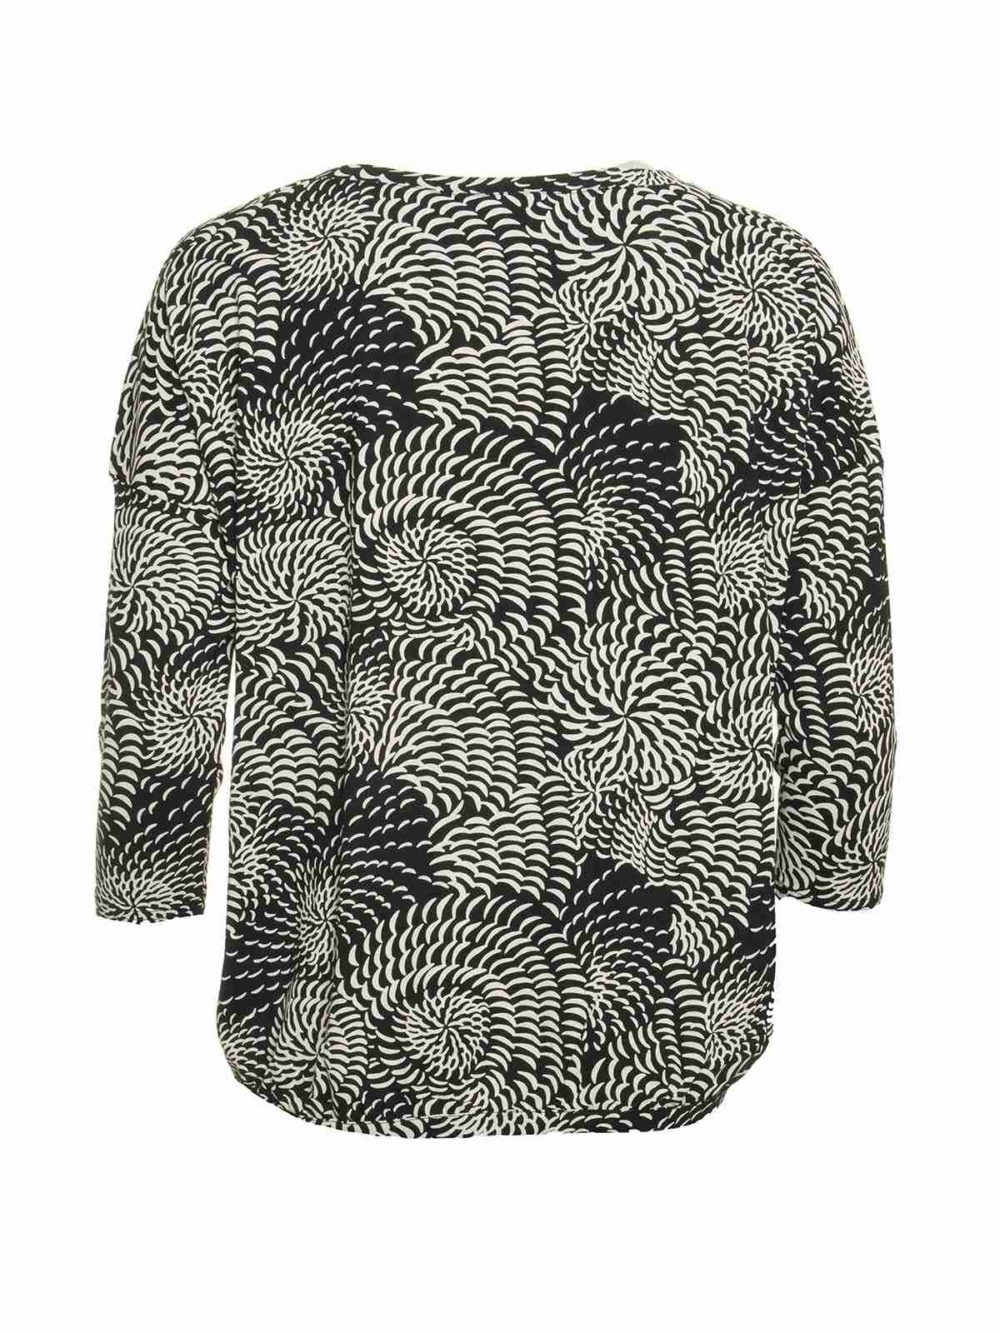 Delfina Top Masai Clothing Katie Kerr Women's Clothing